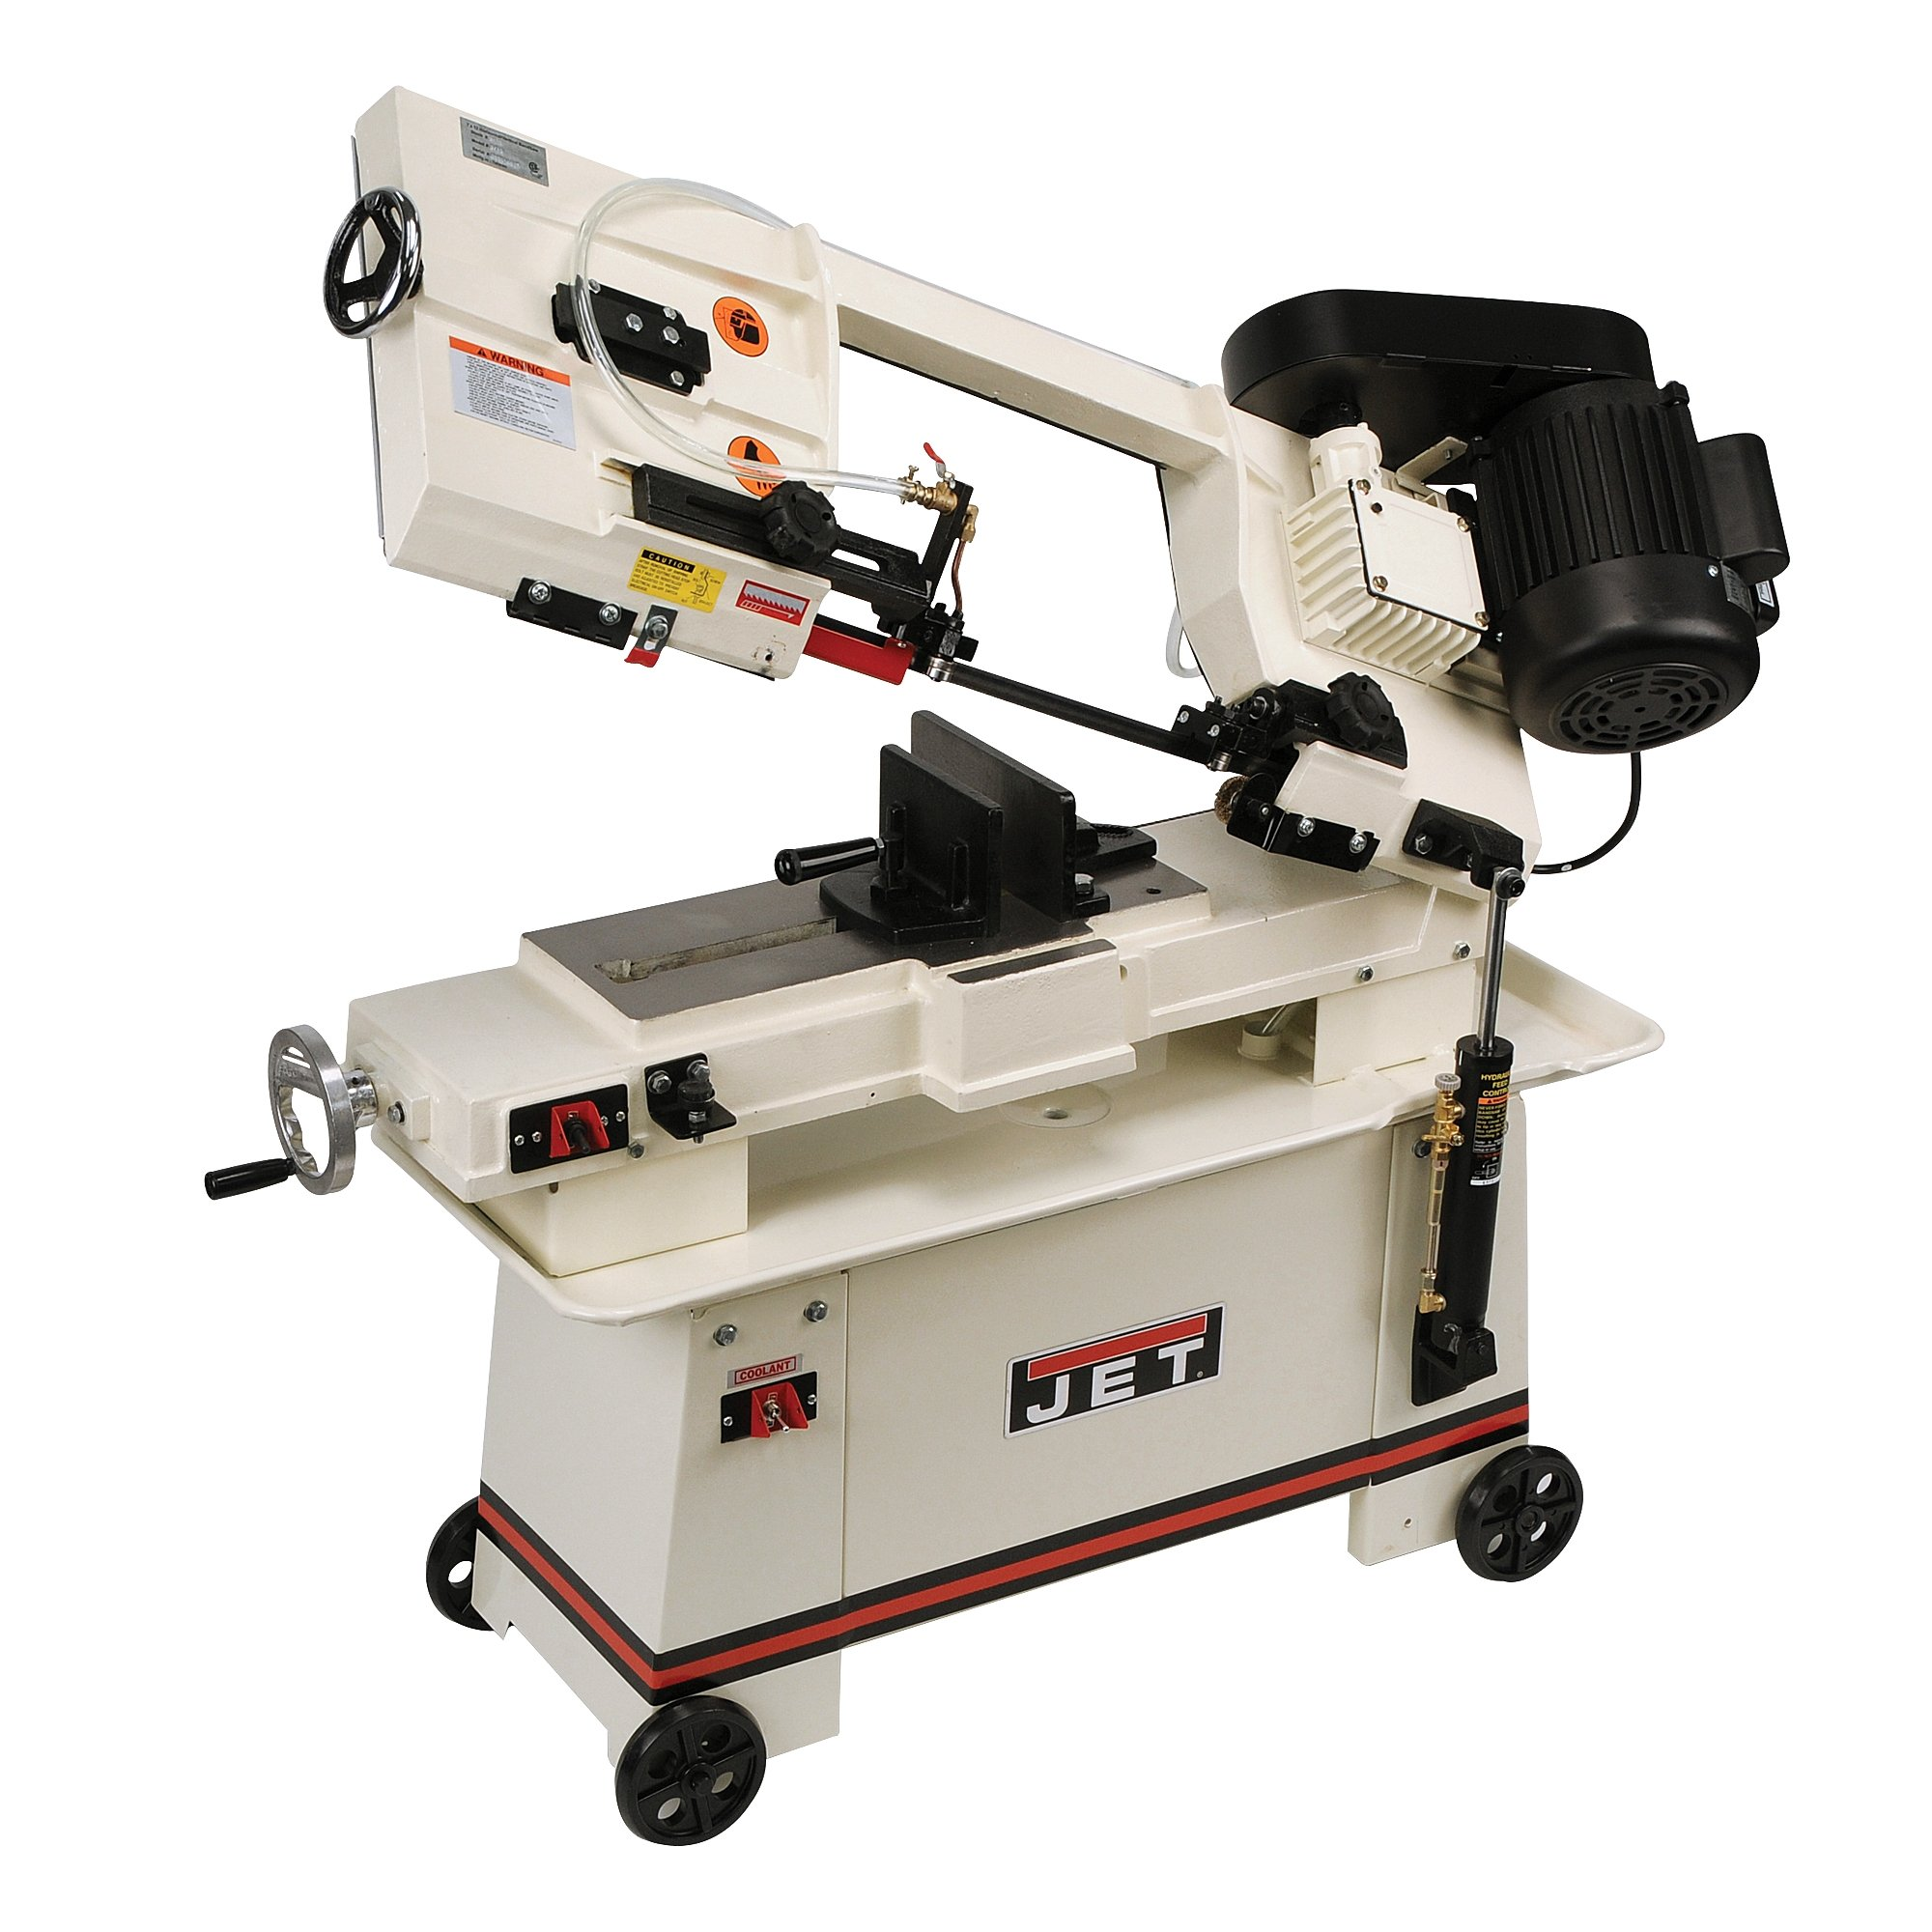 JET 414455 7-Inch by 12-Inch 3/4-Horsepower 220-Volt Horizontal Wet Bandsaw by Jet